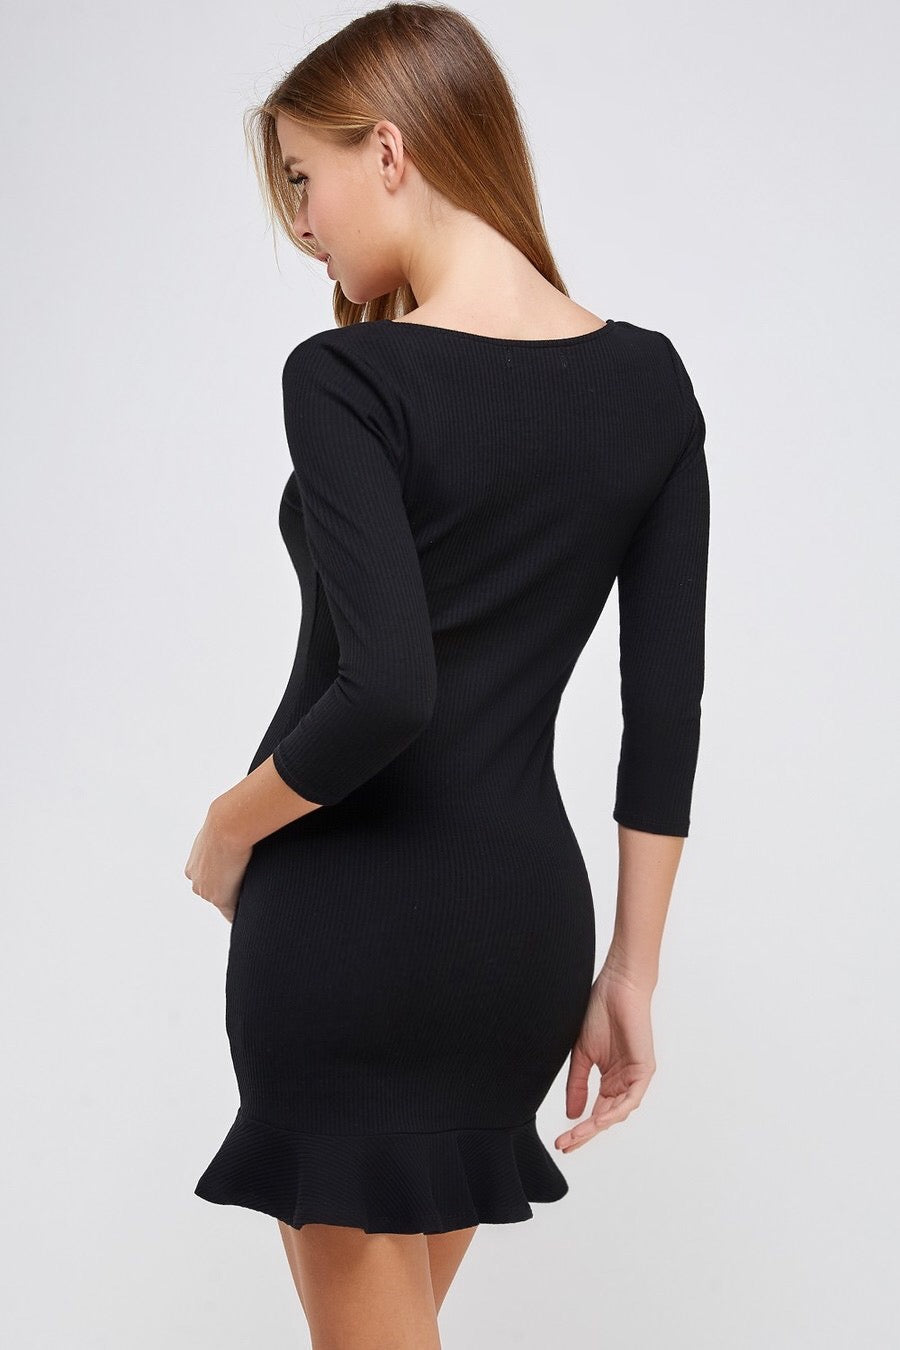 Square Neck 3/4 Sleeve Rib Dress (Black)